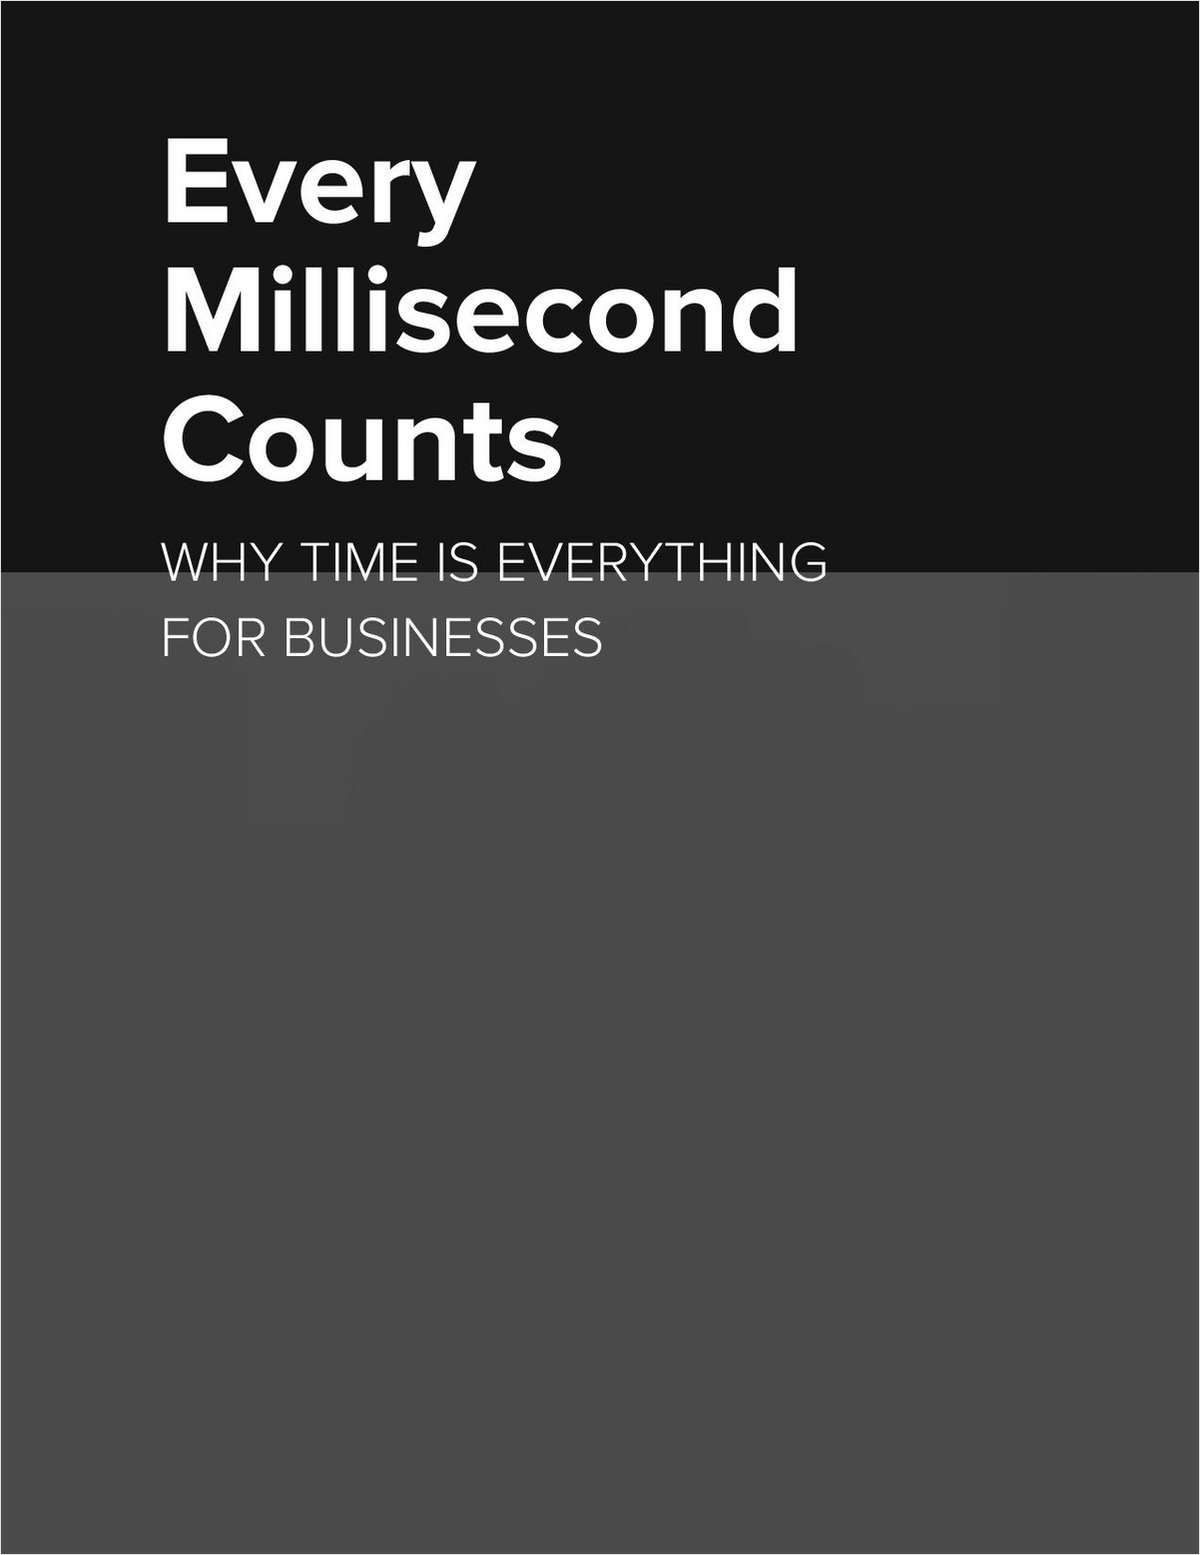 Every Millisecond Counts: Why Time is Everything for Business Screenshot